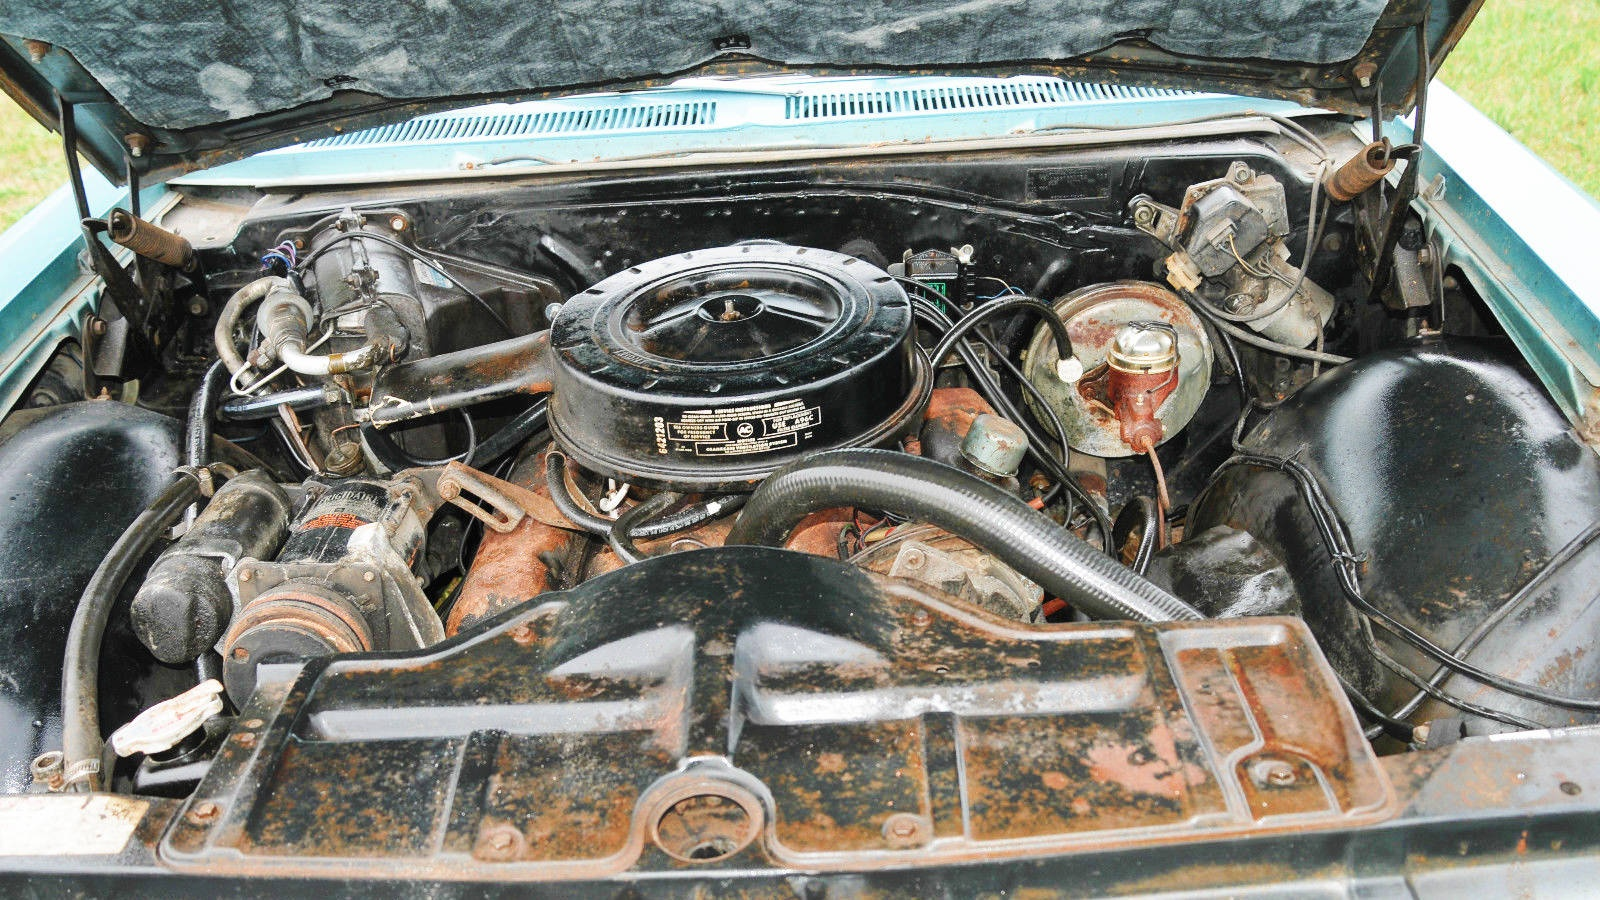 Big survivor 1966 pontiac catalina with 61k miles on the odometer this car should have lots of life left in it the 389 is the 2 barrel base engine and is mated to the turbomatic publicscrutiny Images